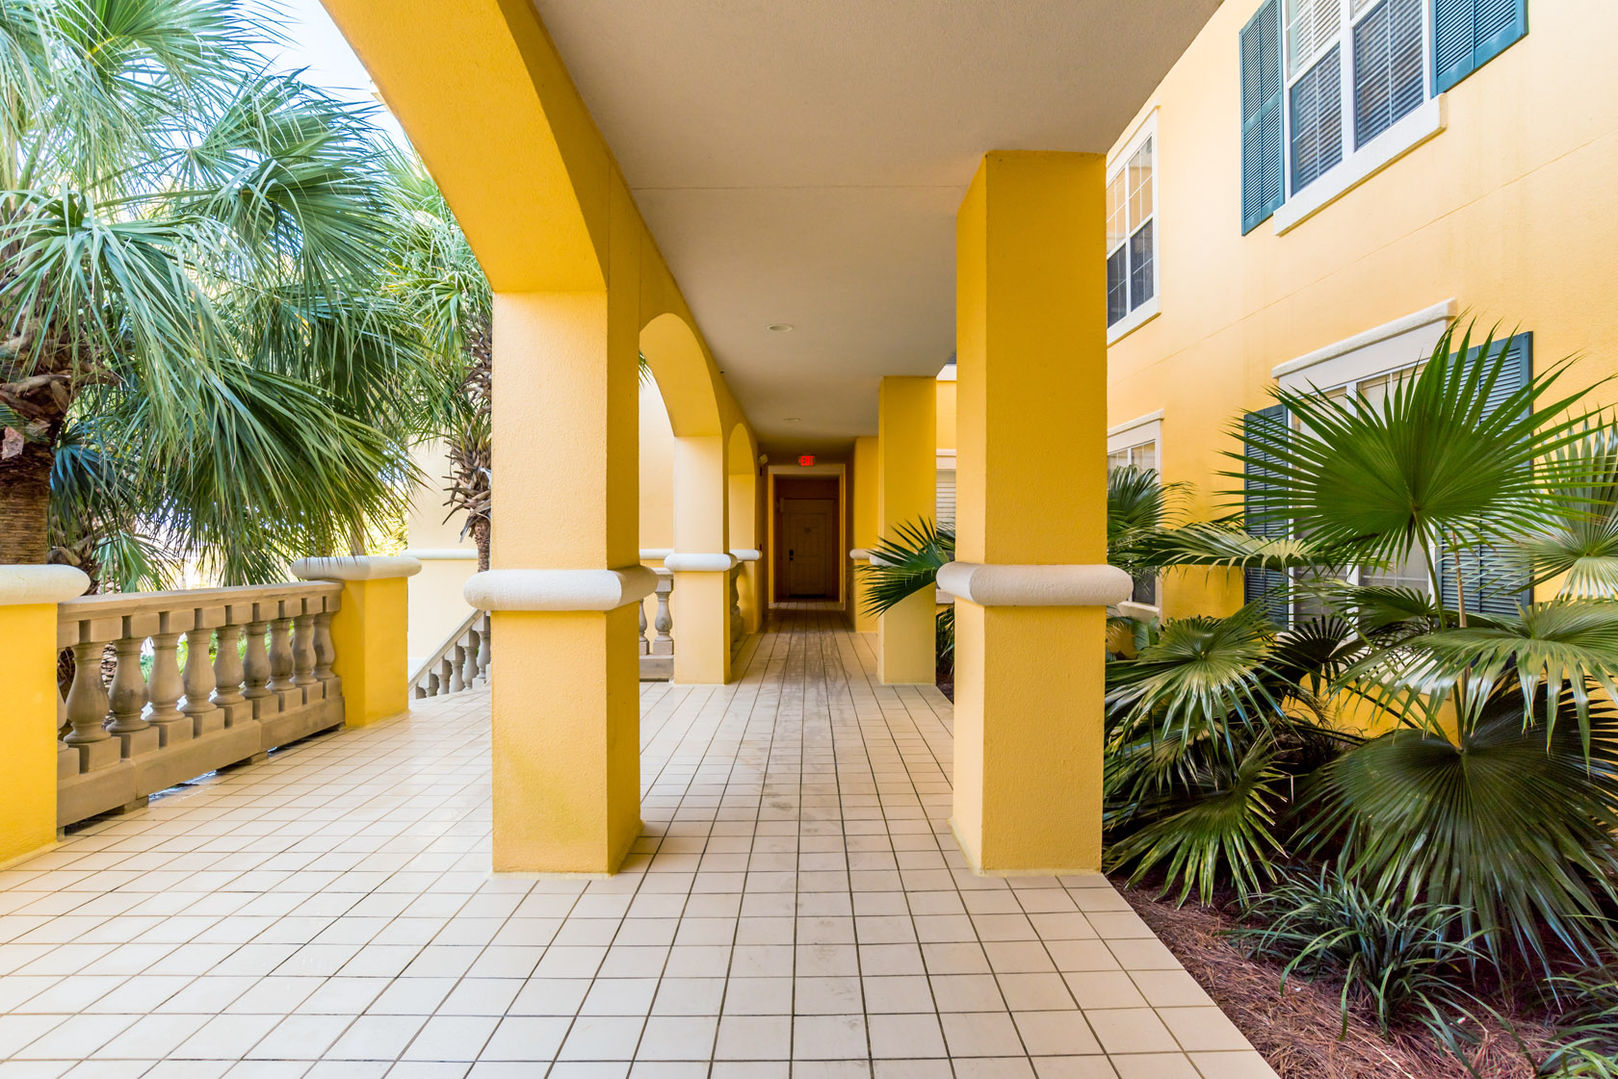 Breezeway to rooms